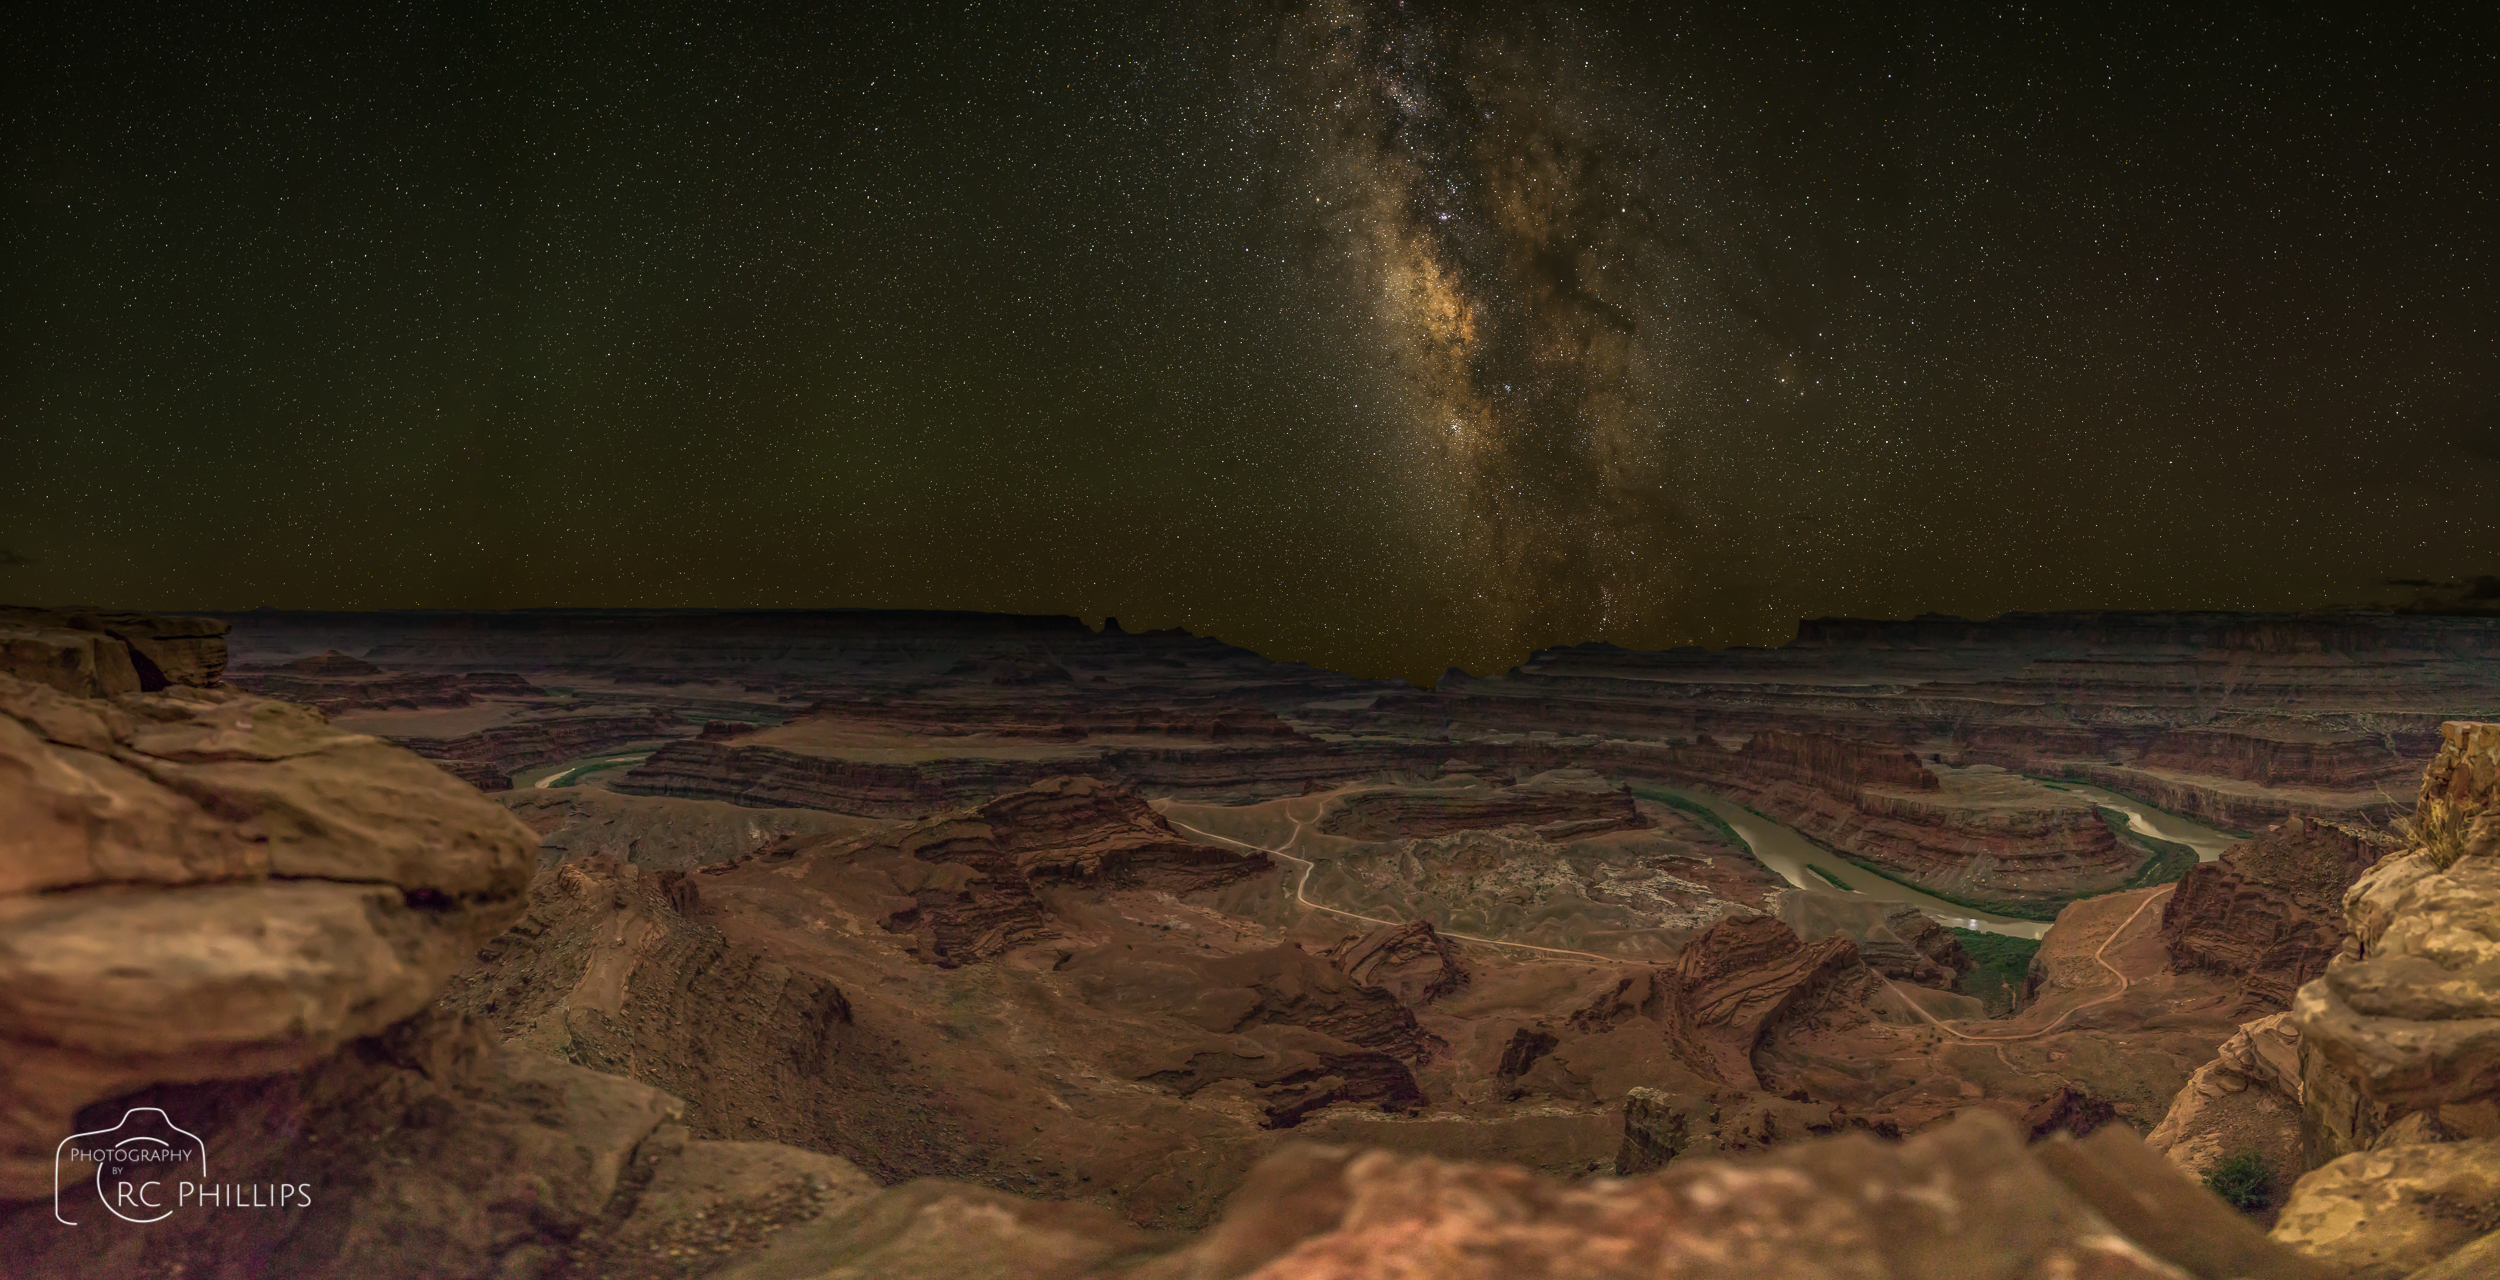 Under the Milky Way Galaxy at Dead Horse Point State Park, Utah.